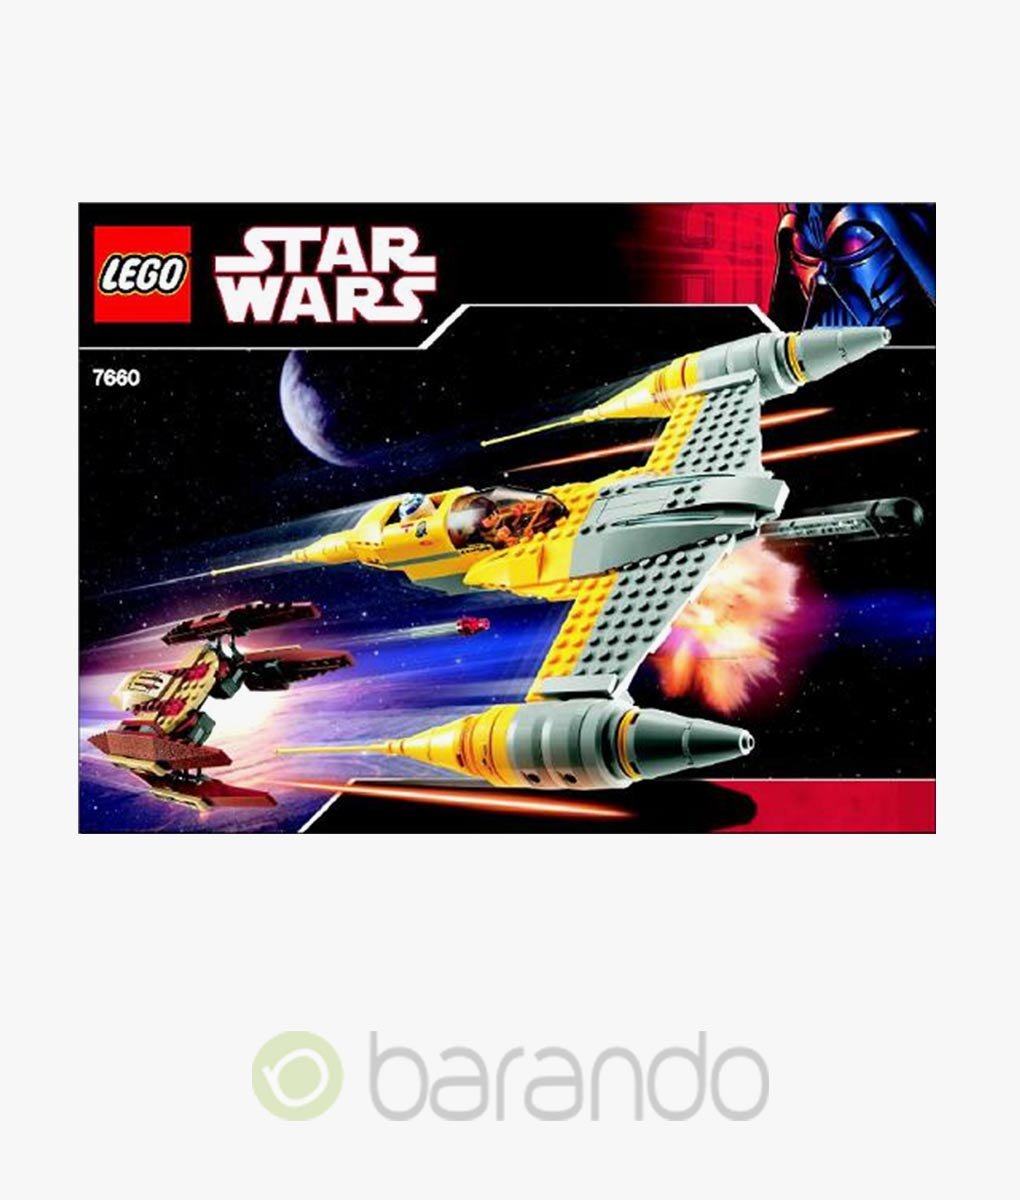 LEGO Star Wars 7660 Naboo Starfighter Set